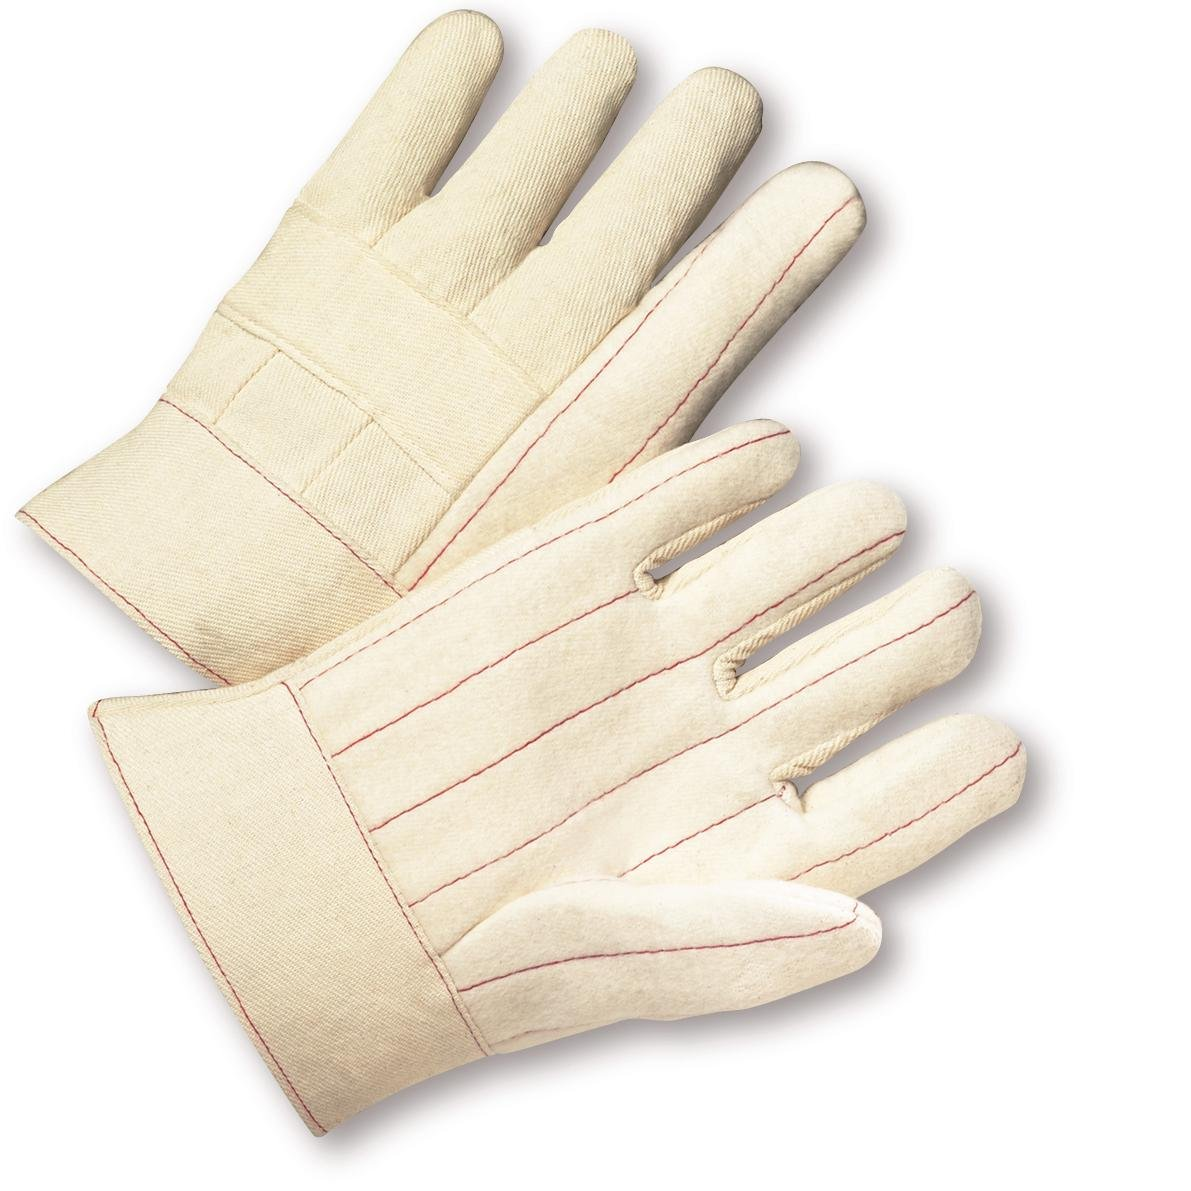 Pack of 12 Large West Chester 7930 Extra Heavy Weight Cotton Hot Mill Gloves White